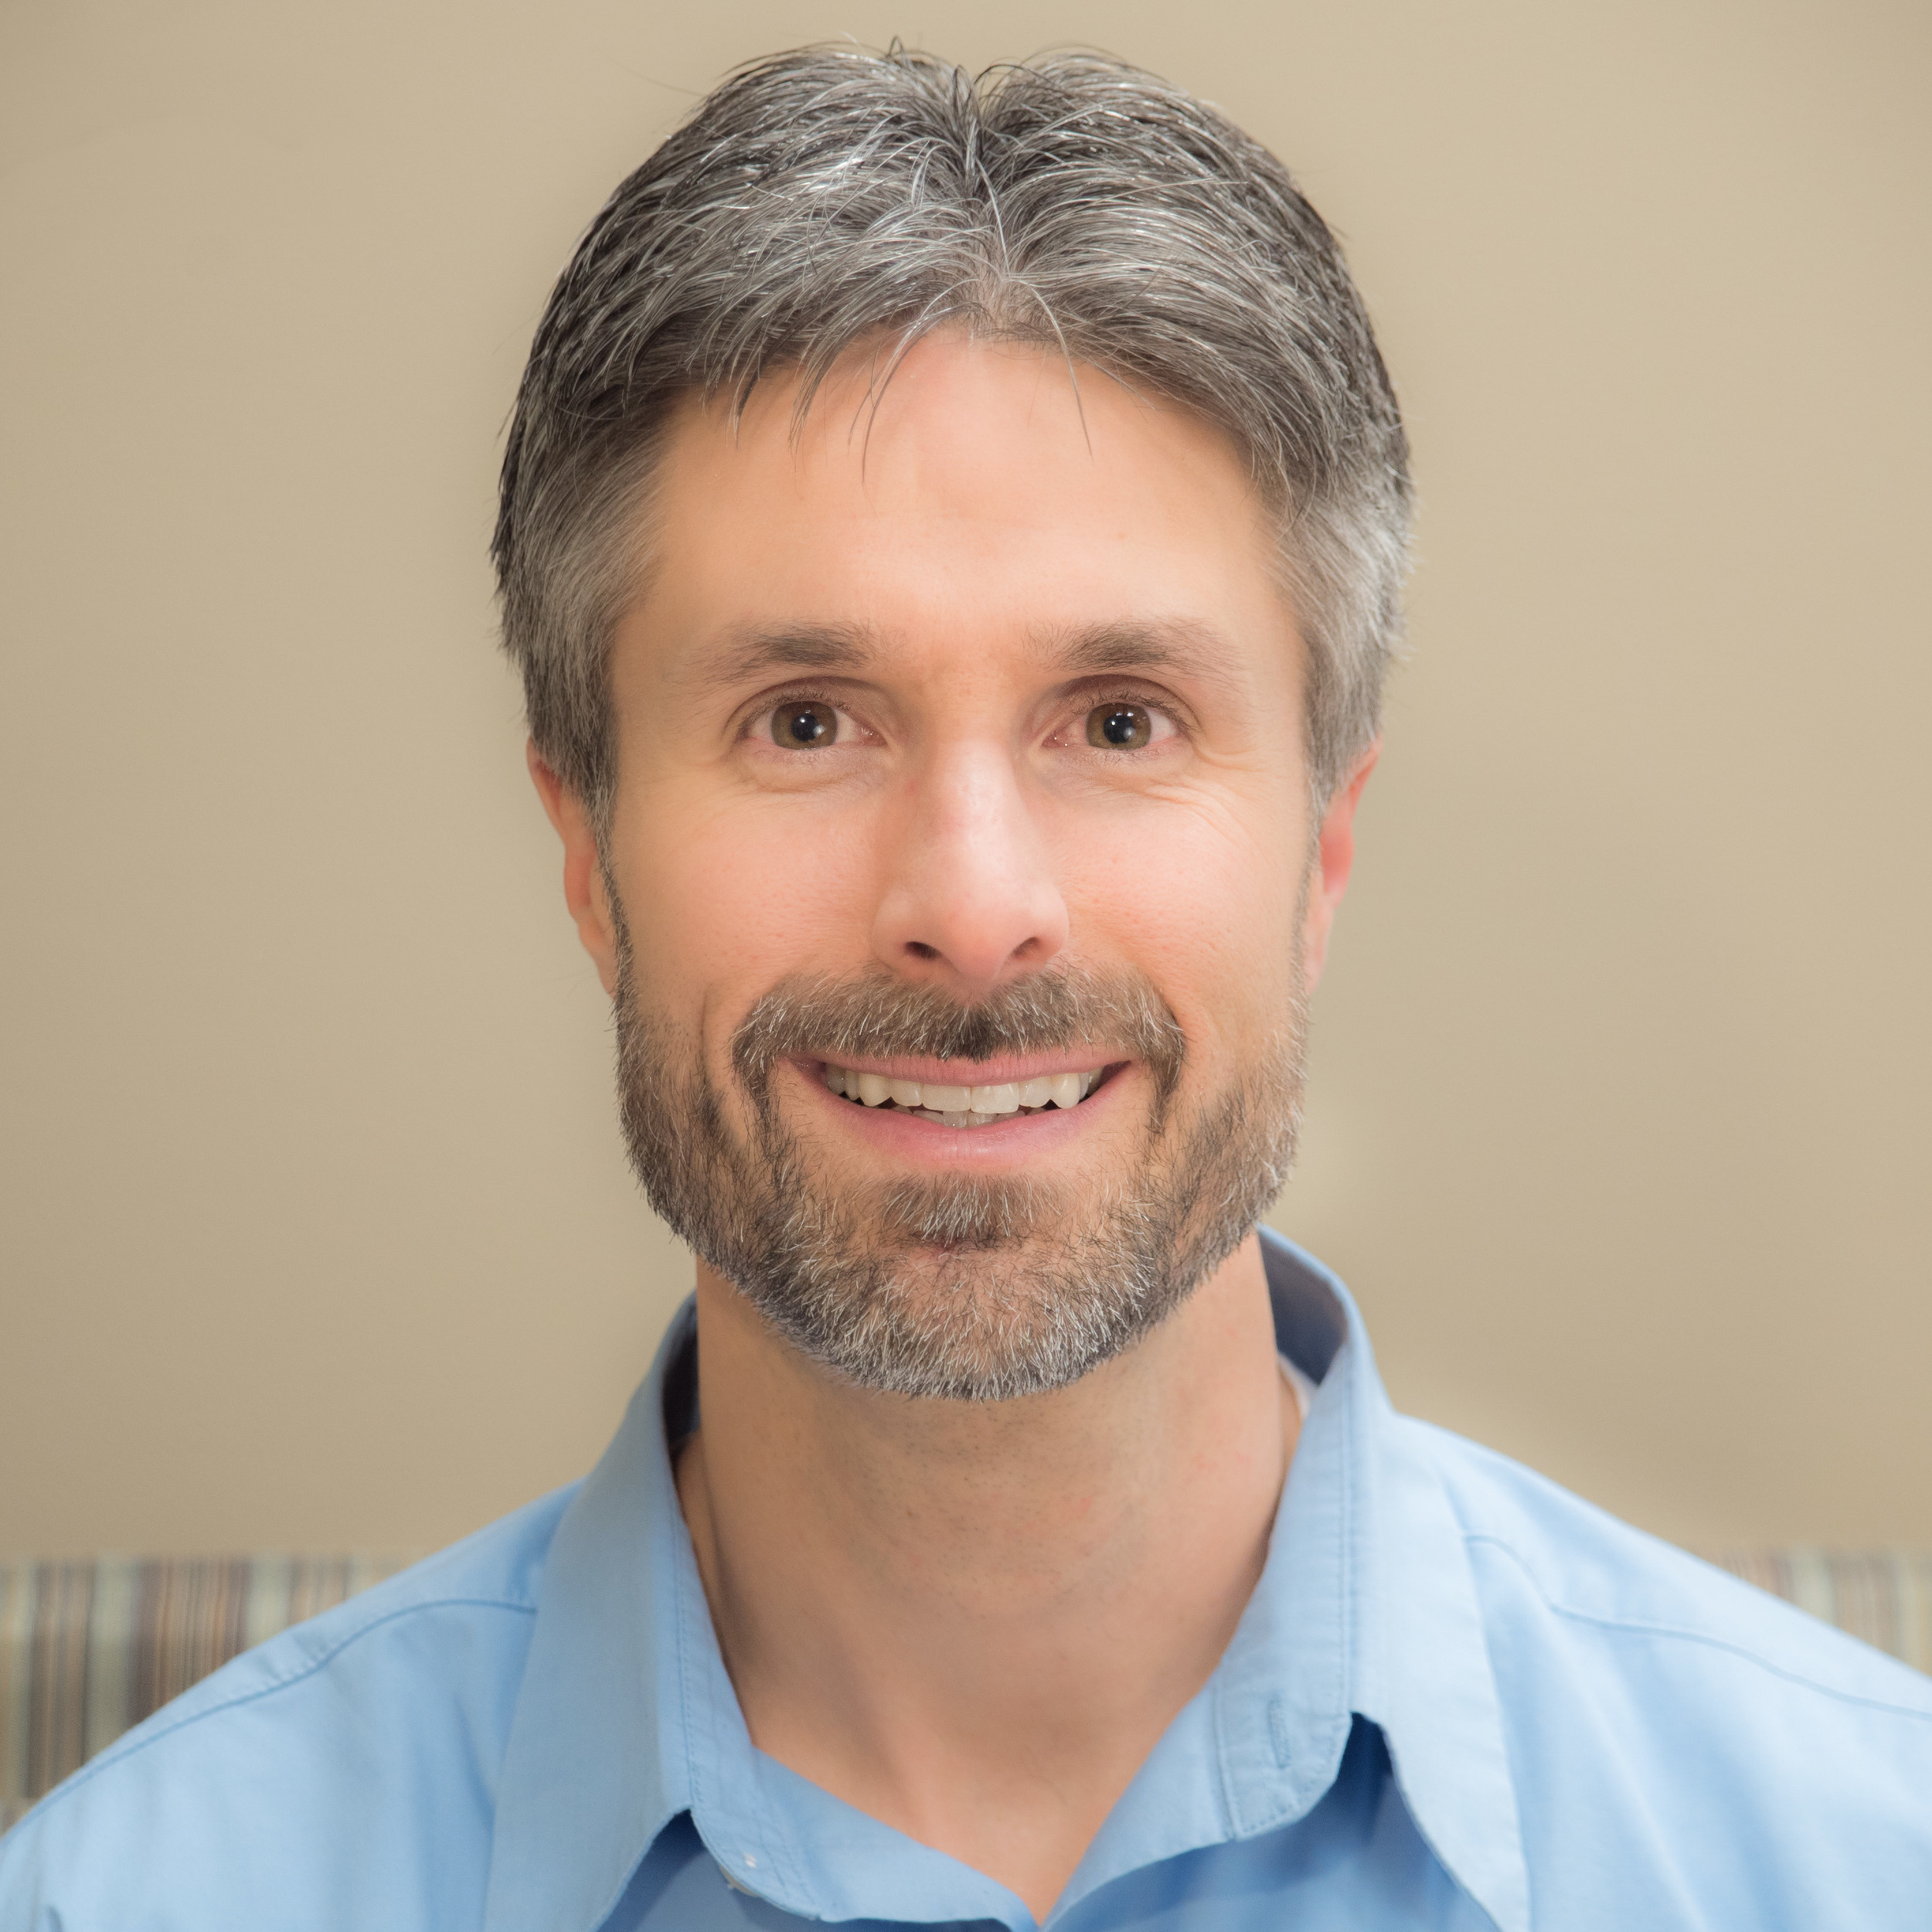 Matt Knutson is the owner of Total Wellness and is also one of the practicing physical therapists for Therapy Advances.  He has been practicing physical therapy for 20 years, all of which have been in private practice, after graduating from the physical therapy program at the University of Wisconsin- Madison.  He is a firm believer in establishing strong and positive relationships with his patients as well as collaborating with other healthcare professionals to provide the best, holistic care possible.  Matt specializes in the treatment of injured workers and post-surgical rehabilitation and he is always pursuing additional training for advancement in these areas.   Additionally, he is Spanish-speaking, and is consistently striving to enhance his language skills to better serve his patients.